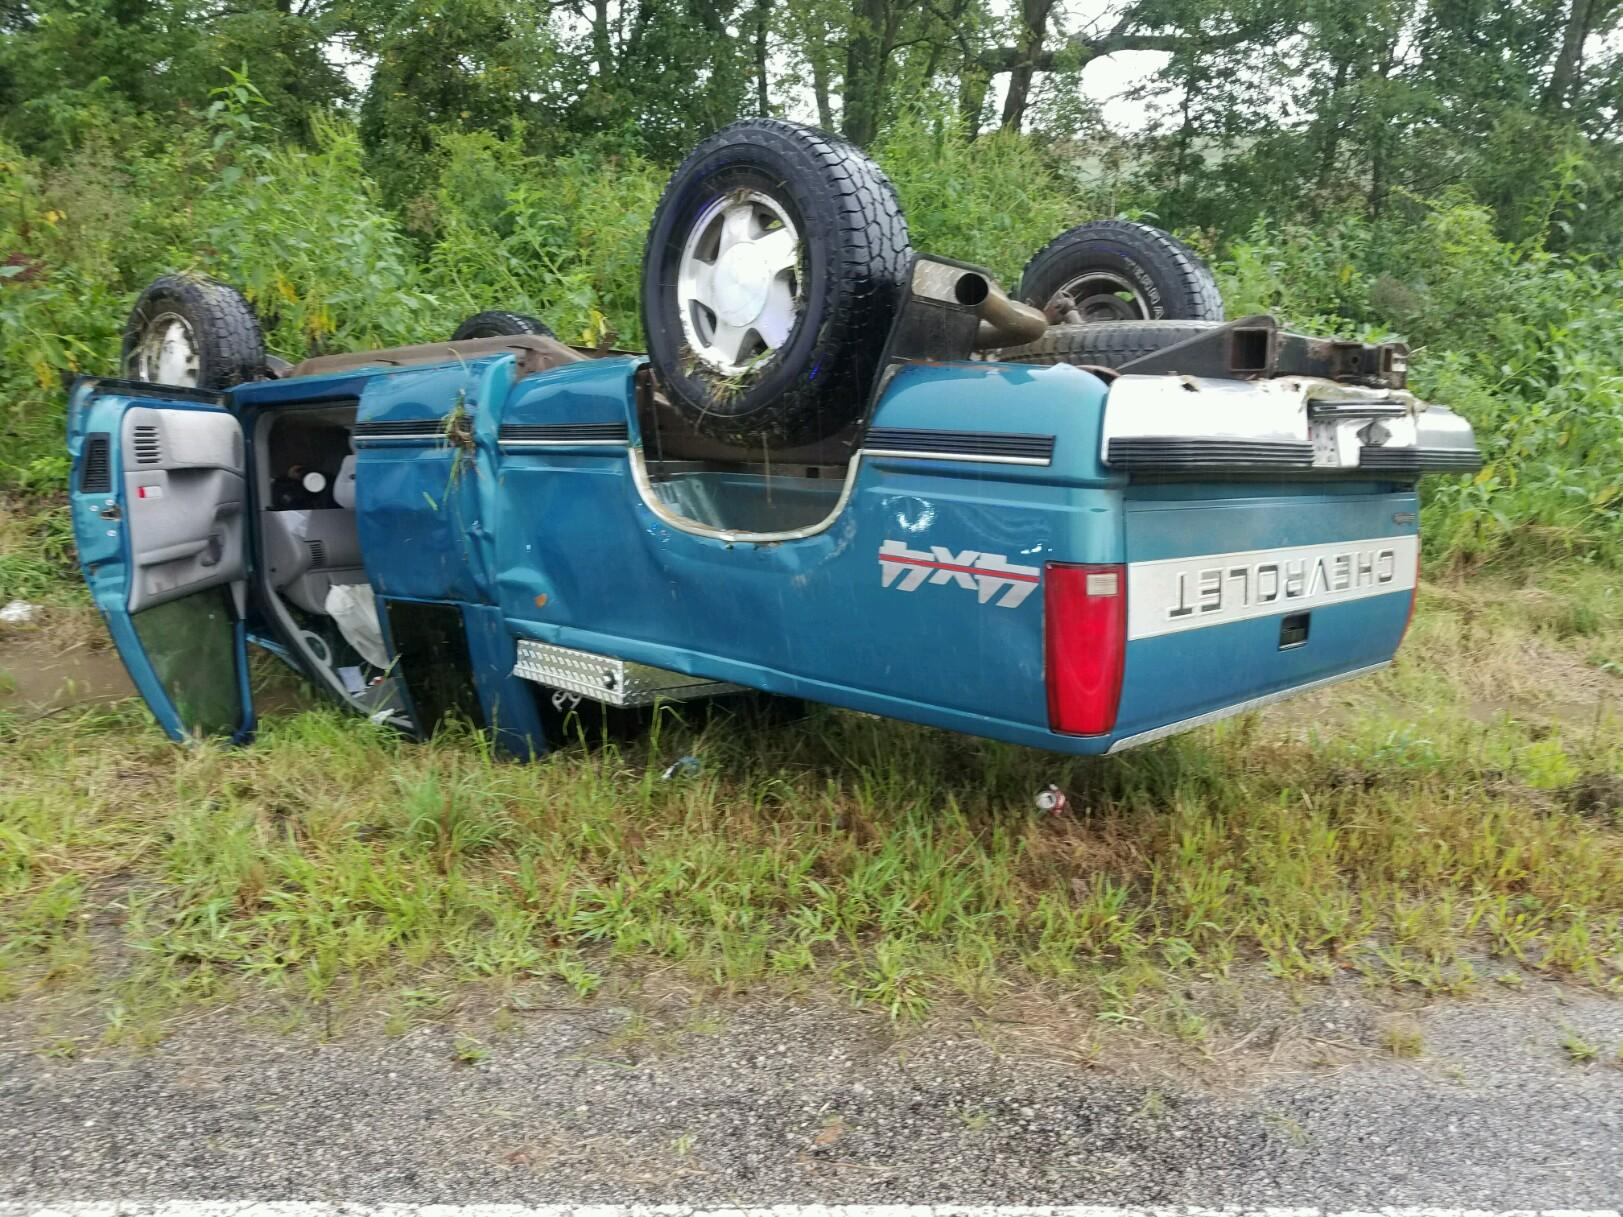 Serious injuries for driver in Audrain County rollover crash